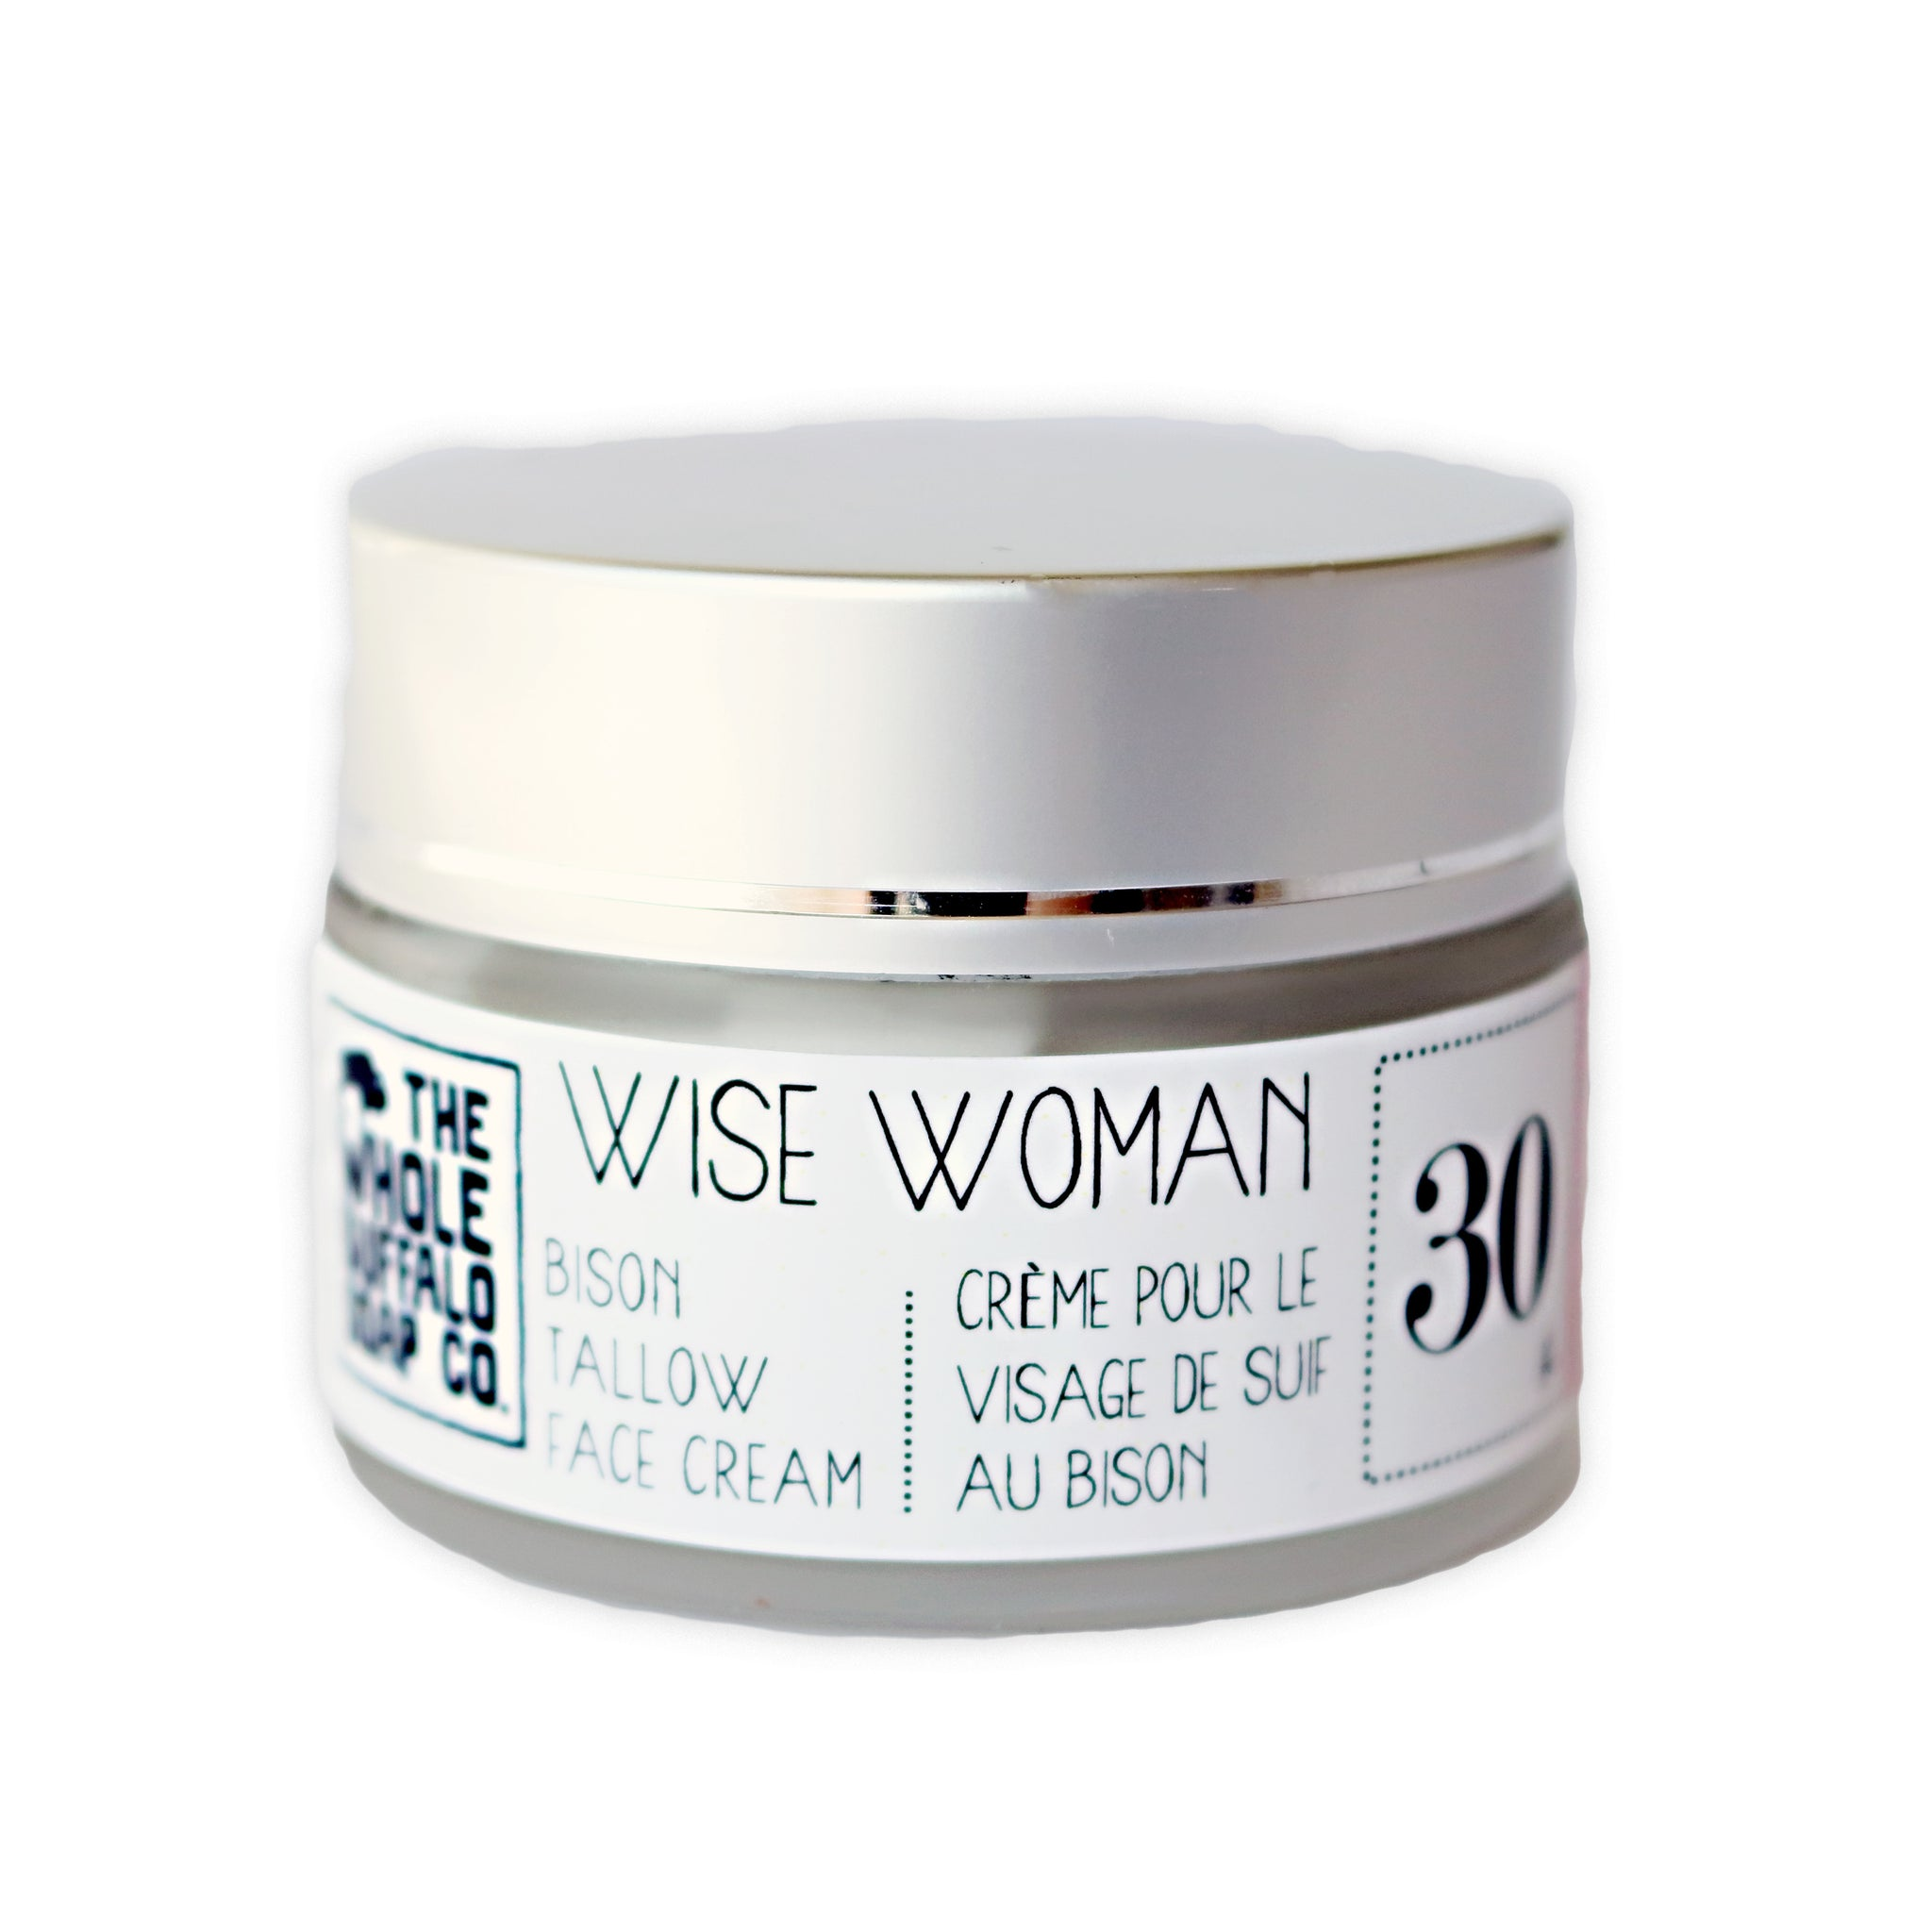 Wise Woman Face Cream